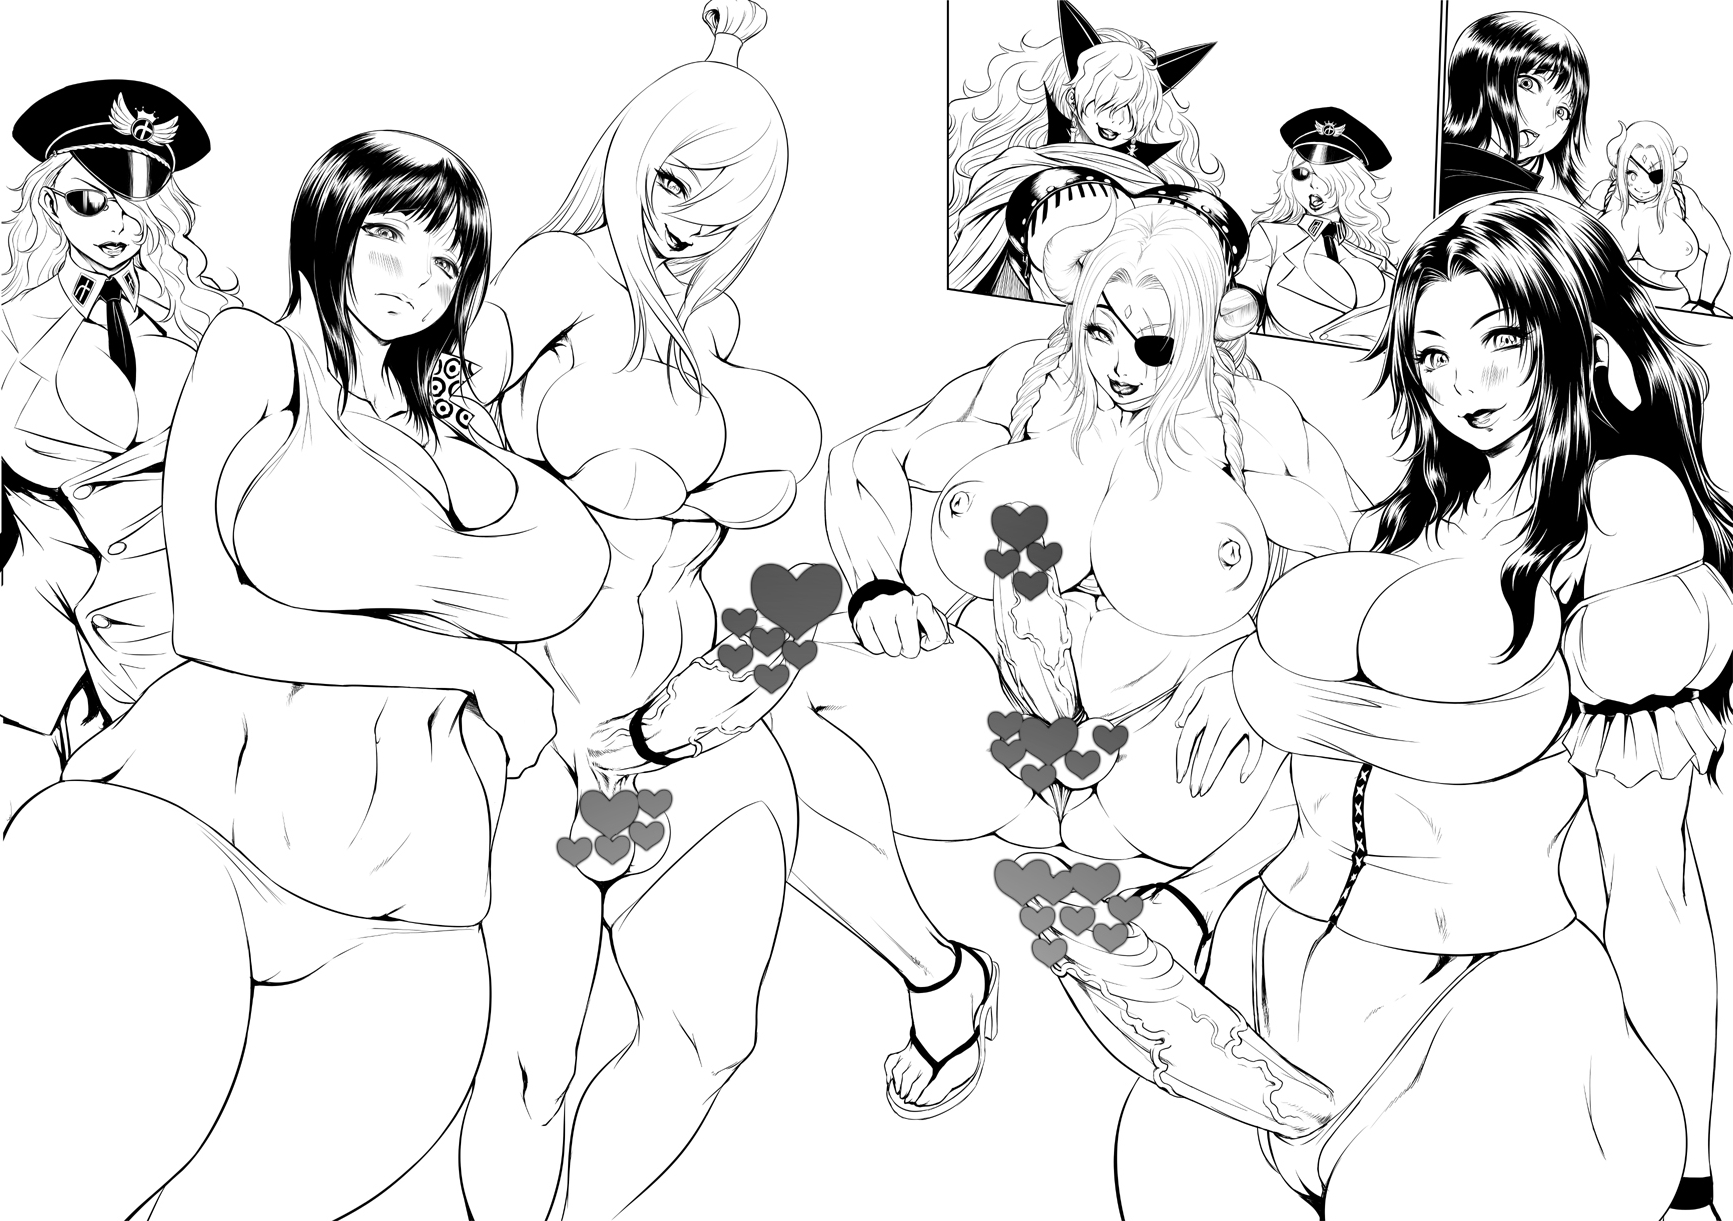 Toon sex pic ##0001309599 bikini black hair breasts cameltoe censored chinbotsu cleavage curvy domino domino (one piece) eyepatch full-package futanari futanari hat high heels highres hips huge breasts long hair mei terumi mizukage monochrome muscle naruto nico robin nipples novelty censor one-eyed one piece panties peaked cap penis pointless censoring sadi-chan sandals scar shoes short hair solo swimsuit terumi mei testicles thick thighs thighs thong tsunade underwear veins veiny penis wide hips yuuhi kurenai